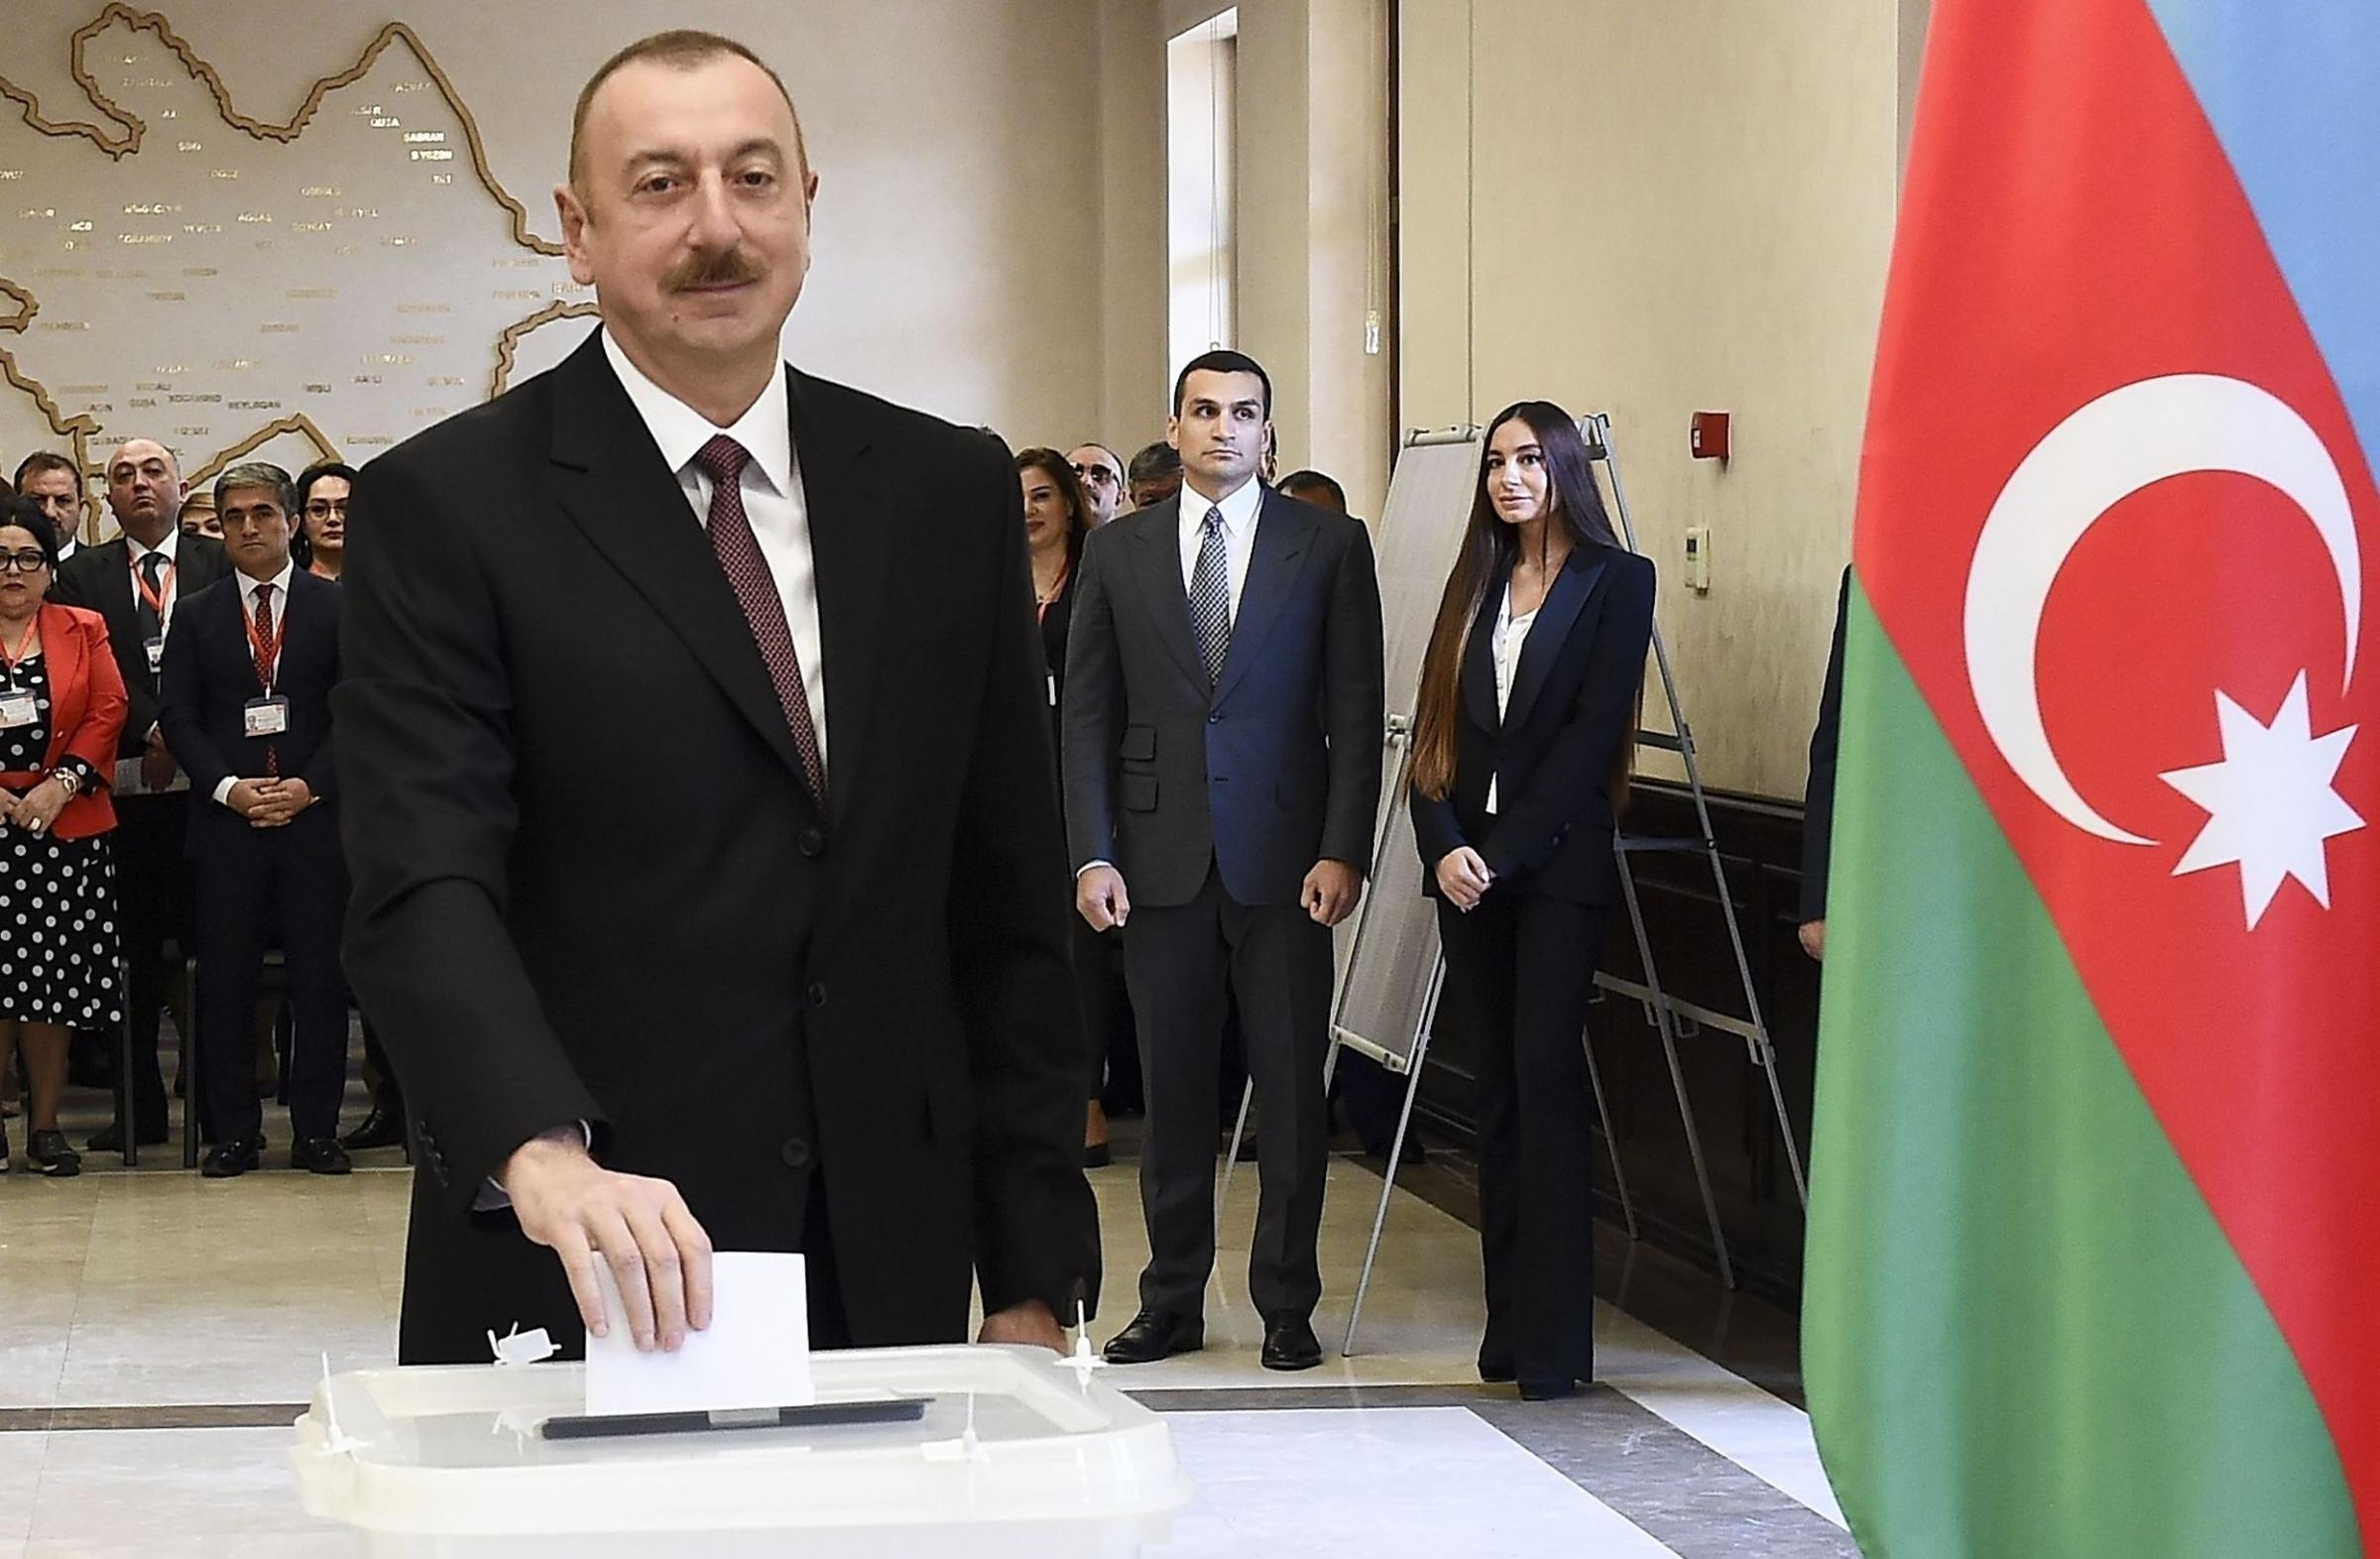 Ilham Aliyev, pictured casting his vote in Baku, succeeded his father Heydar in 2003. Photograph: AP